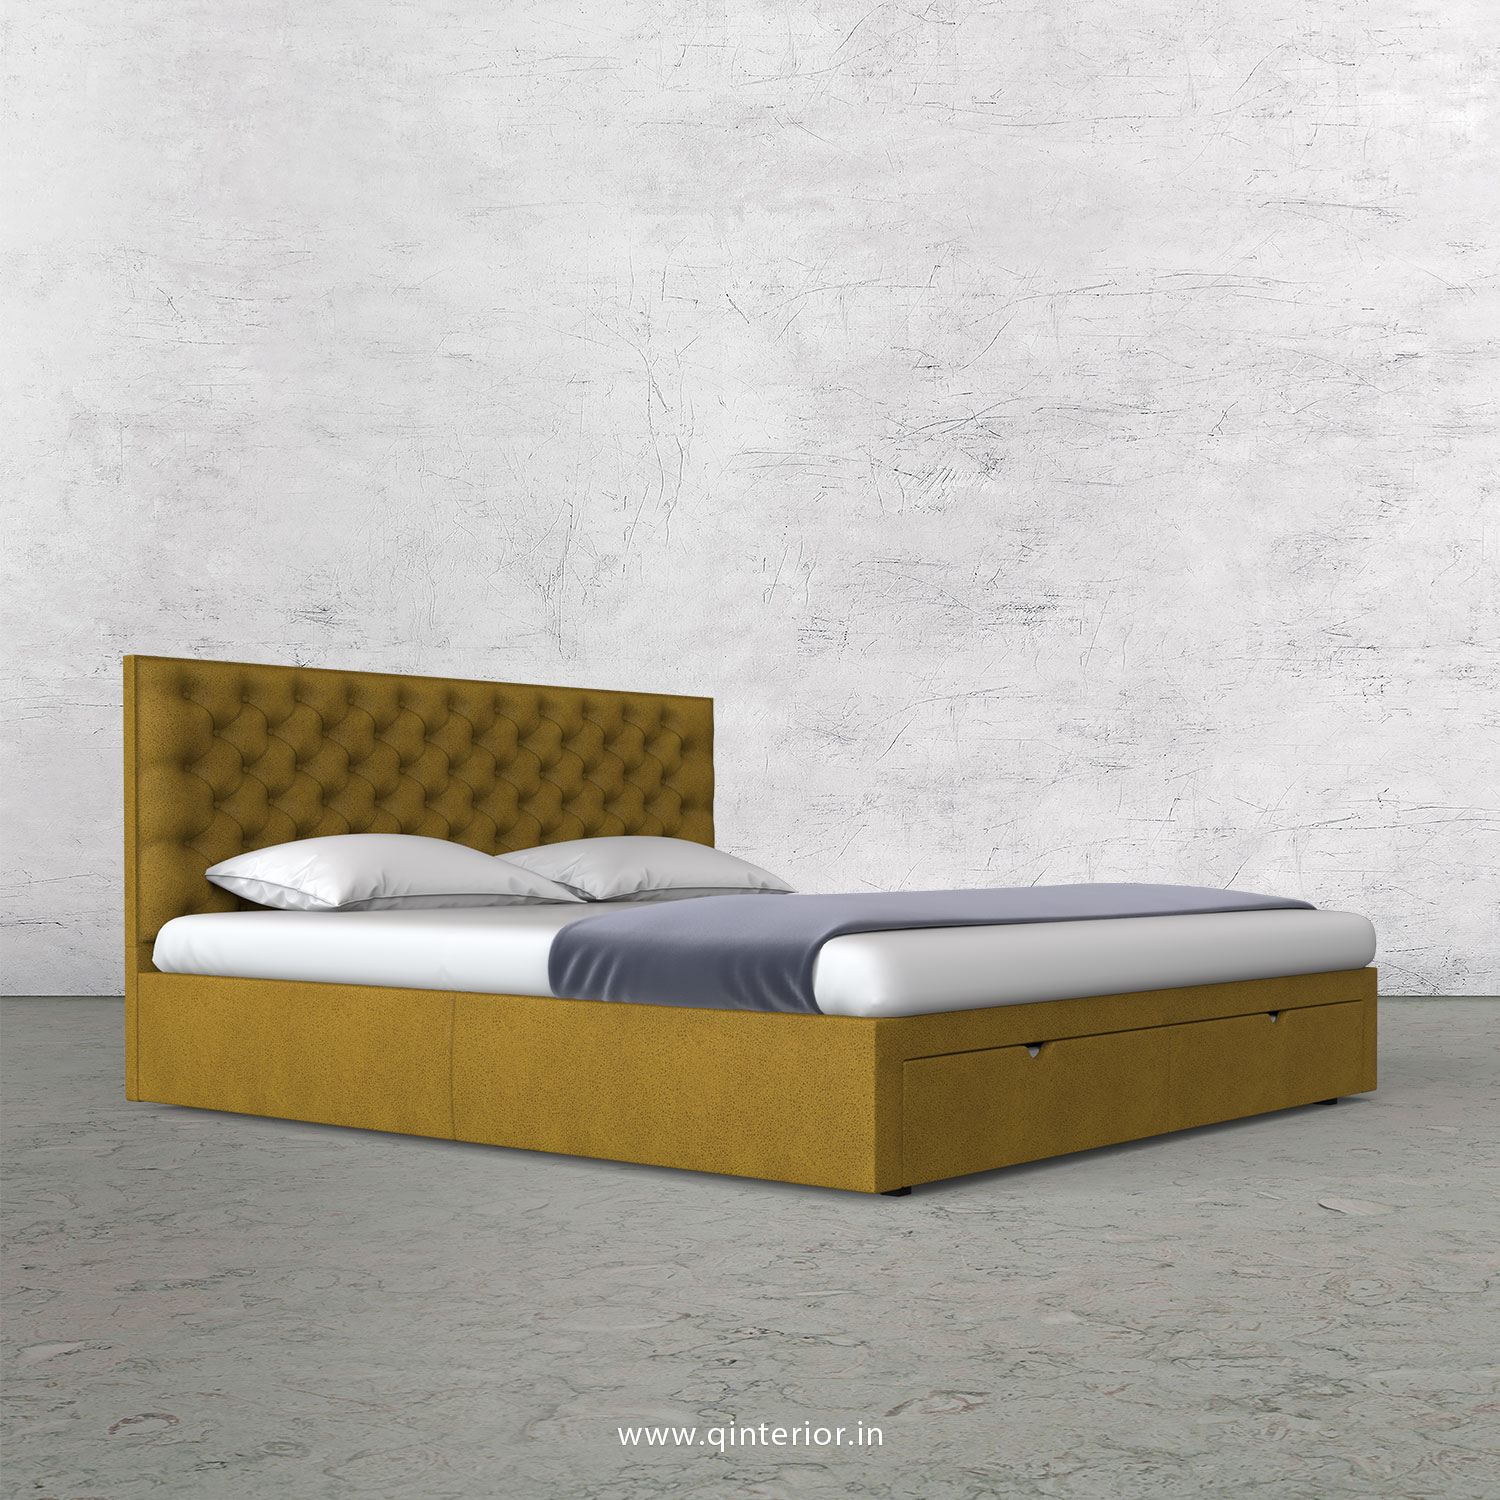 Orion King Size Storage Bed in Fab Leather Fabric - KBD001 FL18